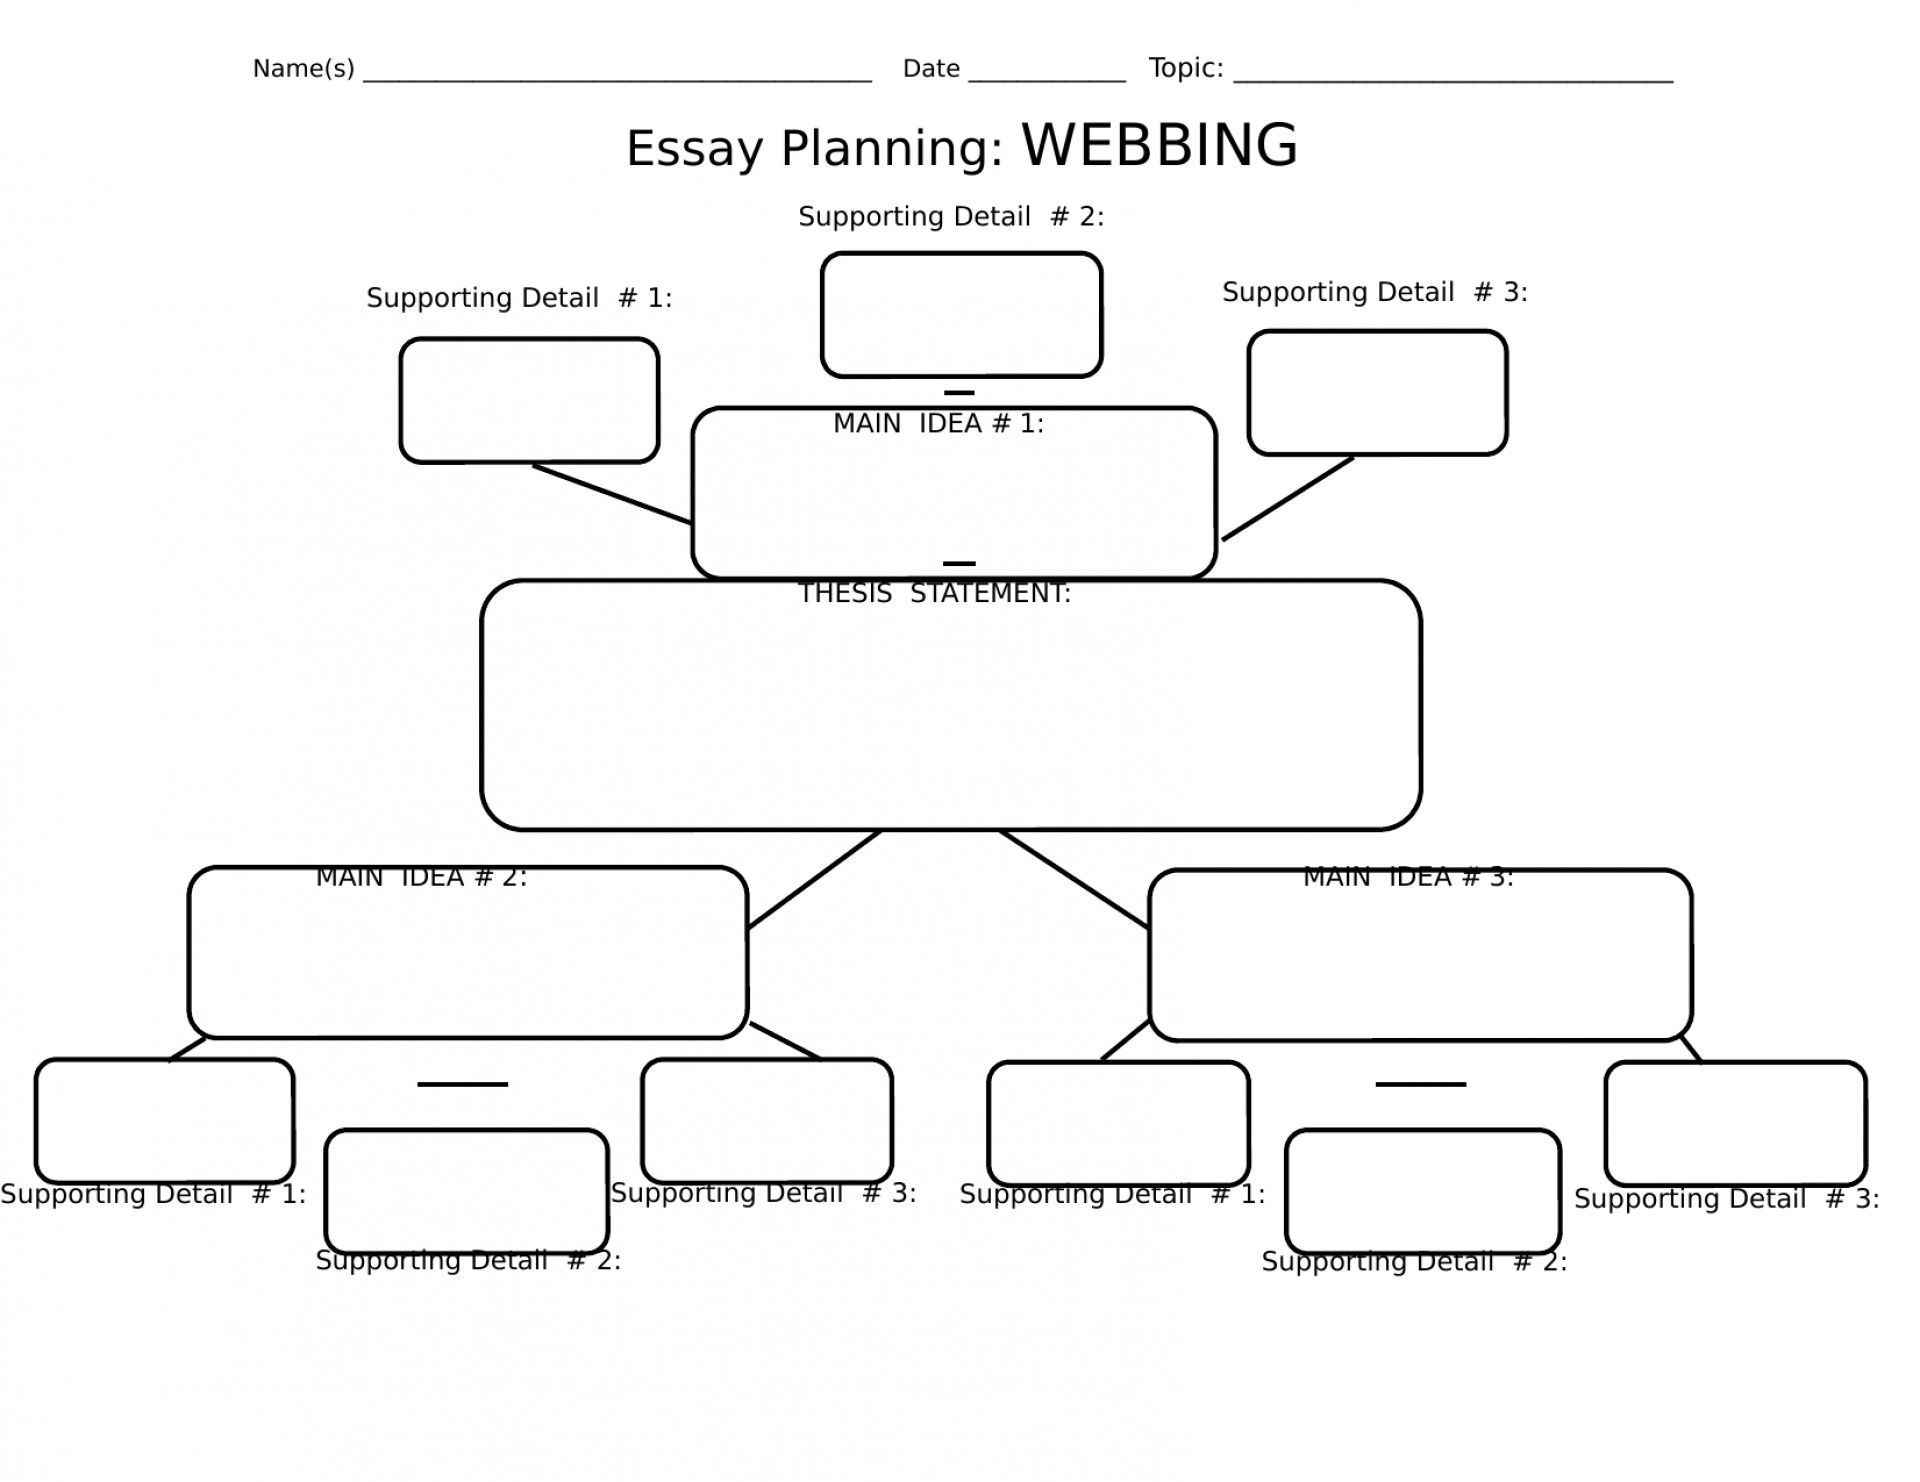 002 Essay Example Planning Sheet 48f818829e89 Original 1 Breathtaking Informative Printable 1920